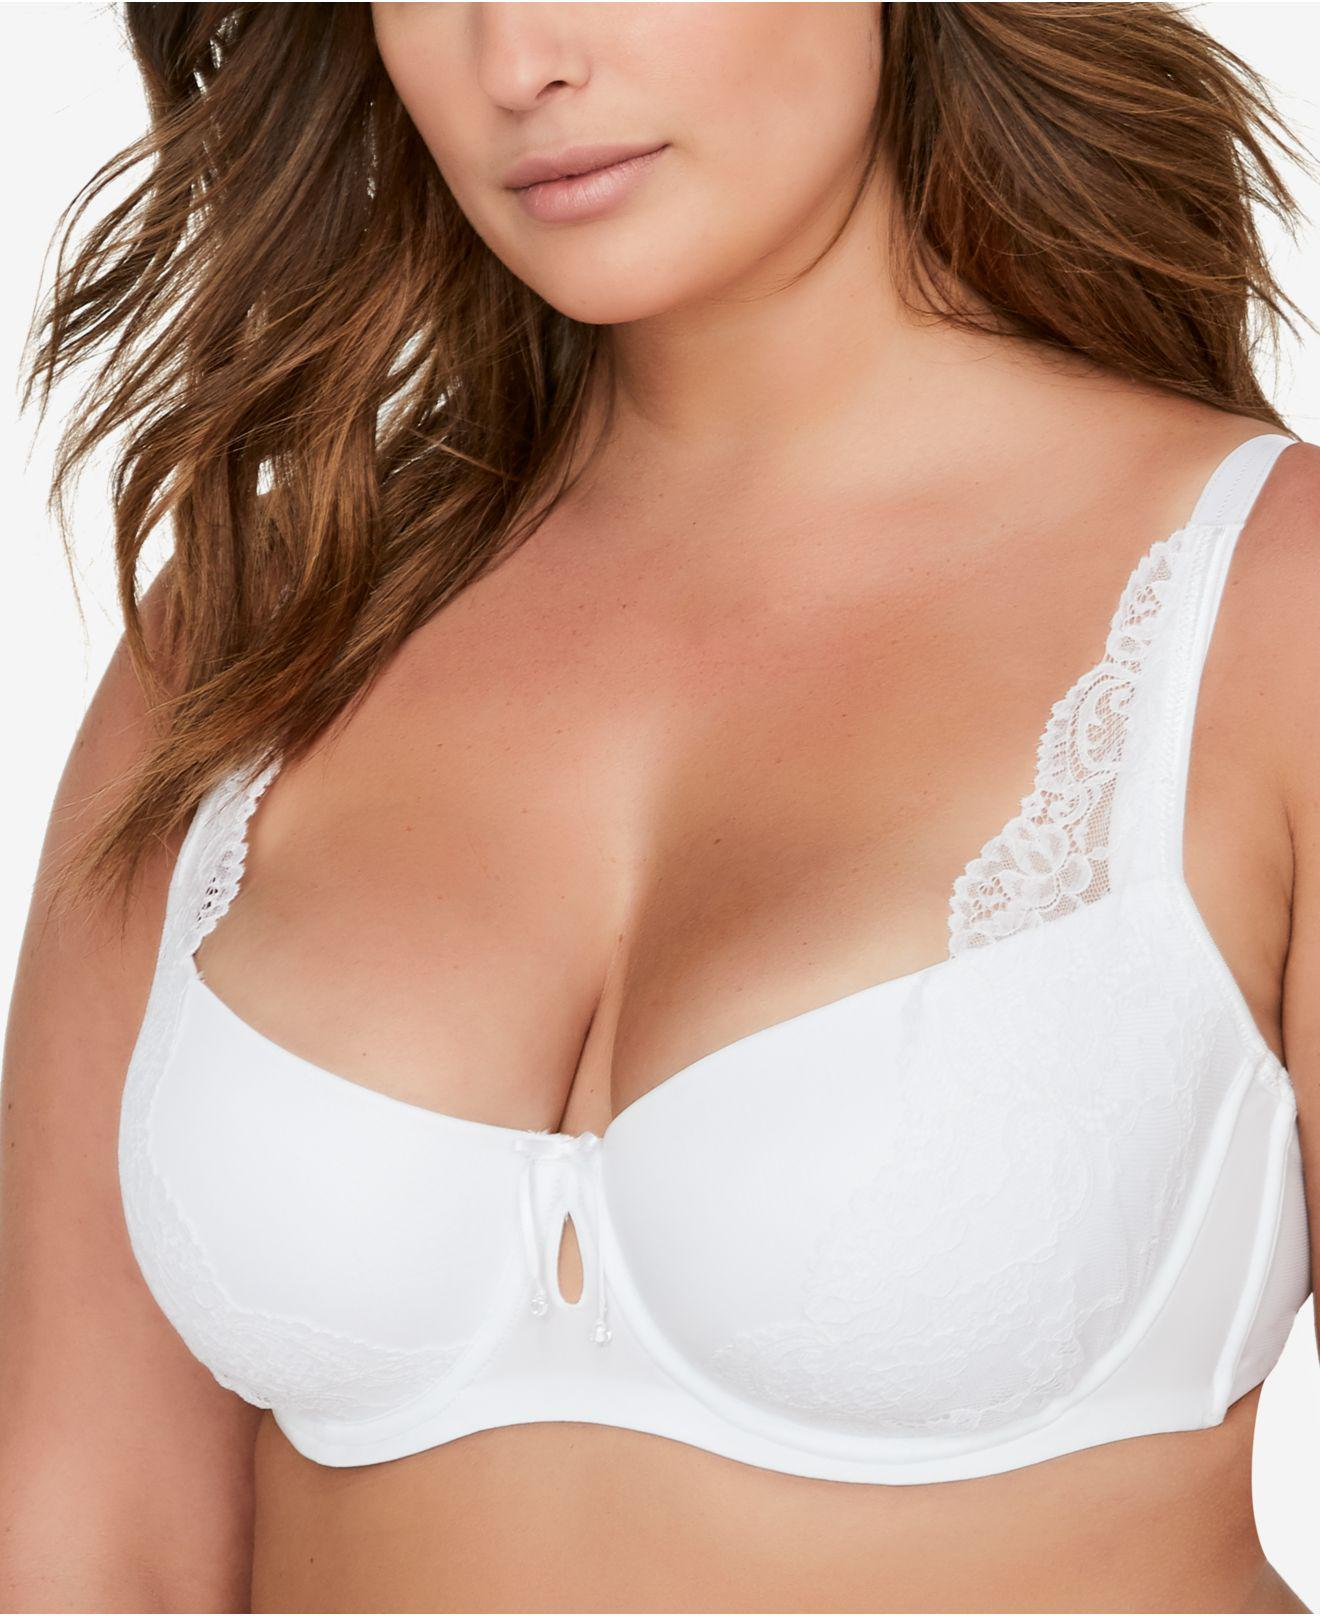 83db8a58c2288 Ashley Graham Diva Plus Size Lace Demi Bra 405087 in White - Lyst